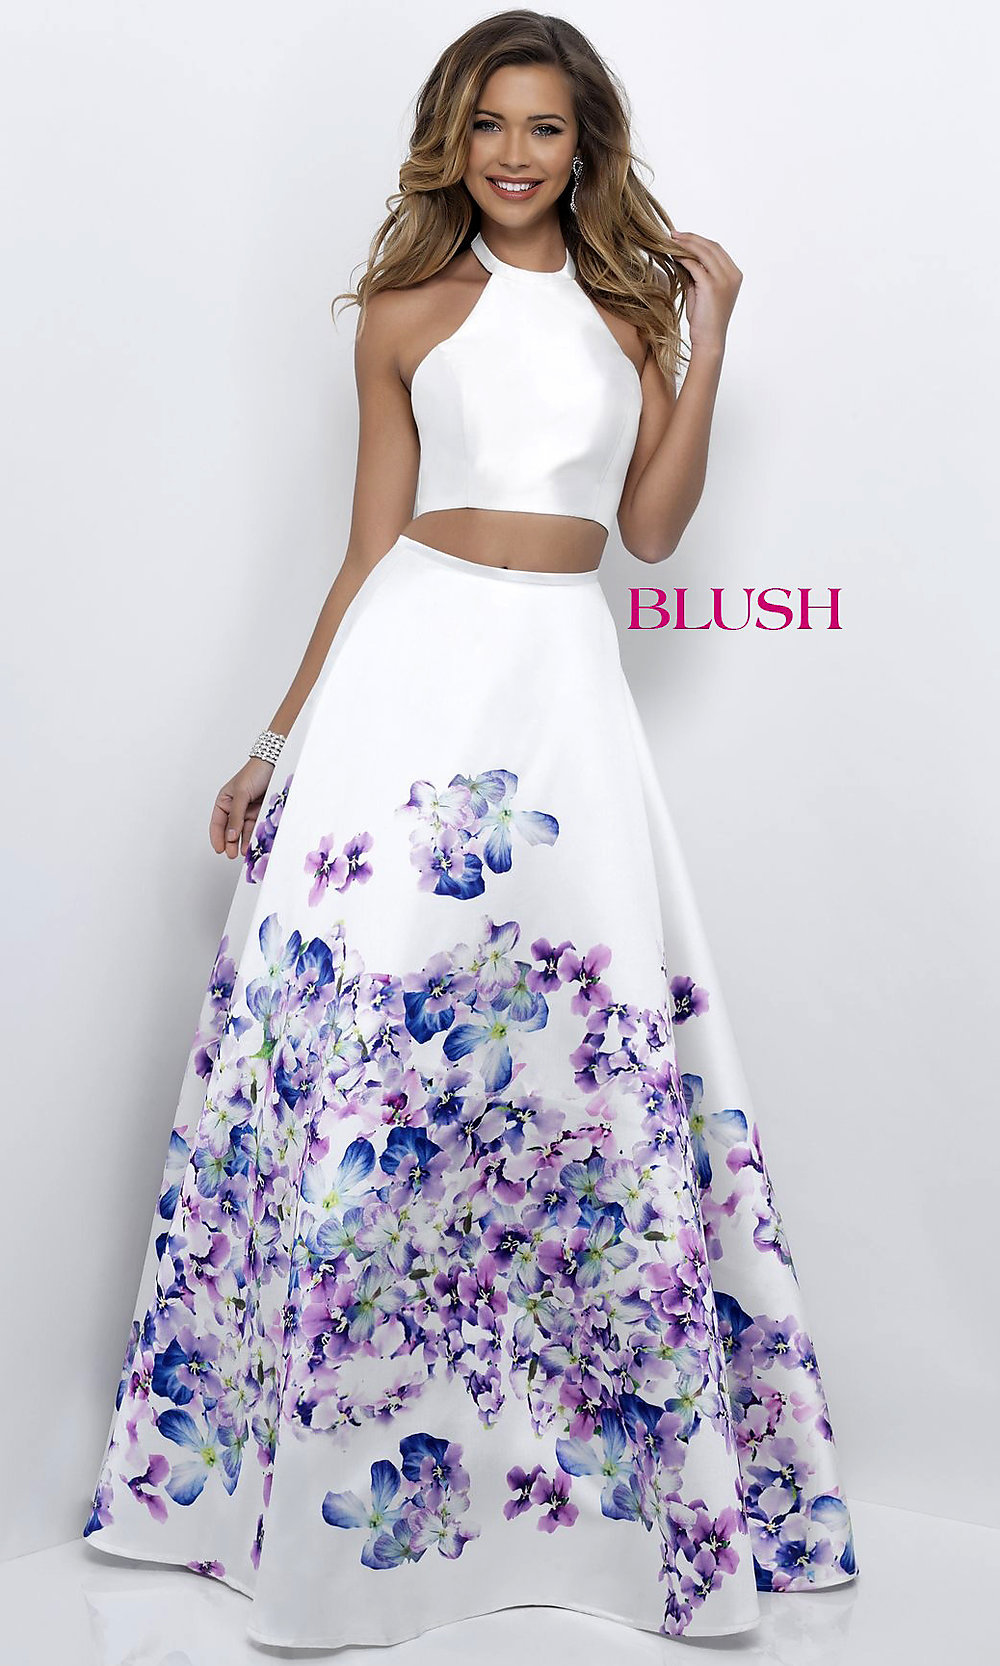 Print Off-White Two-Piece Blush Prom Dress- PromGirl